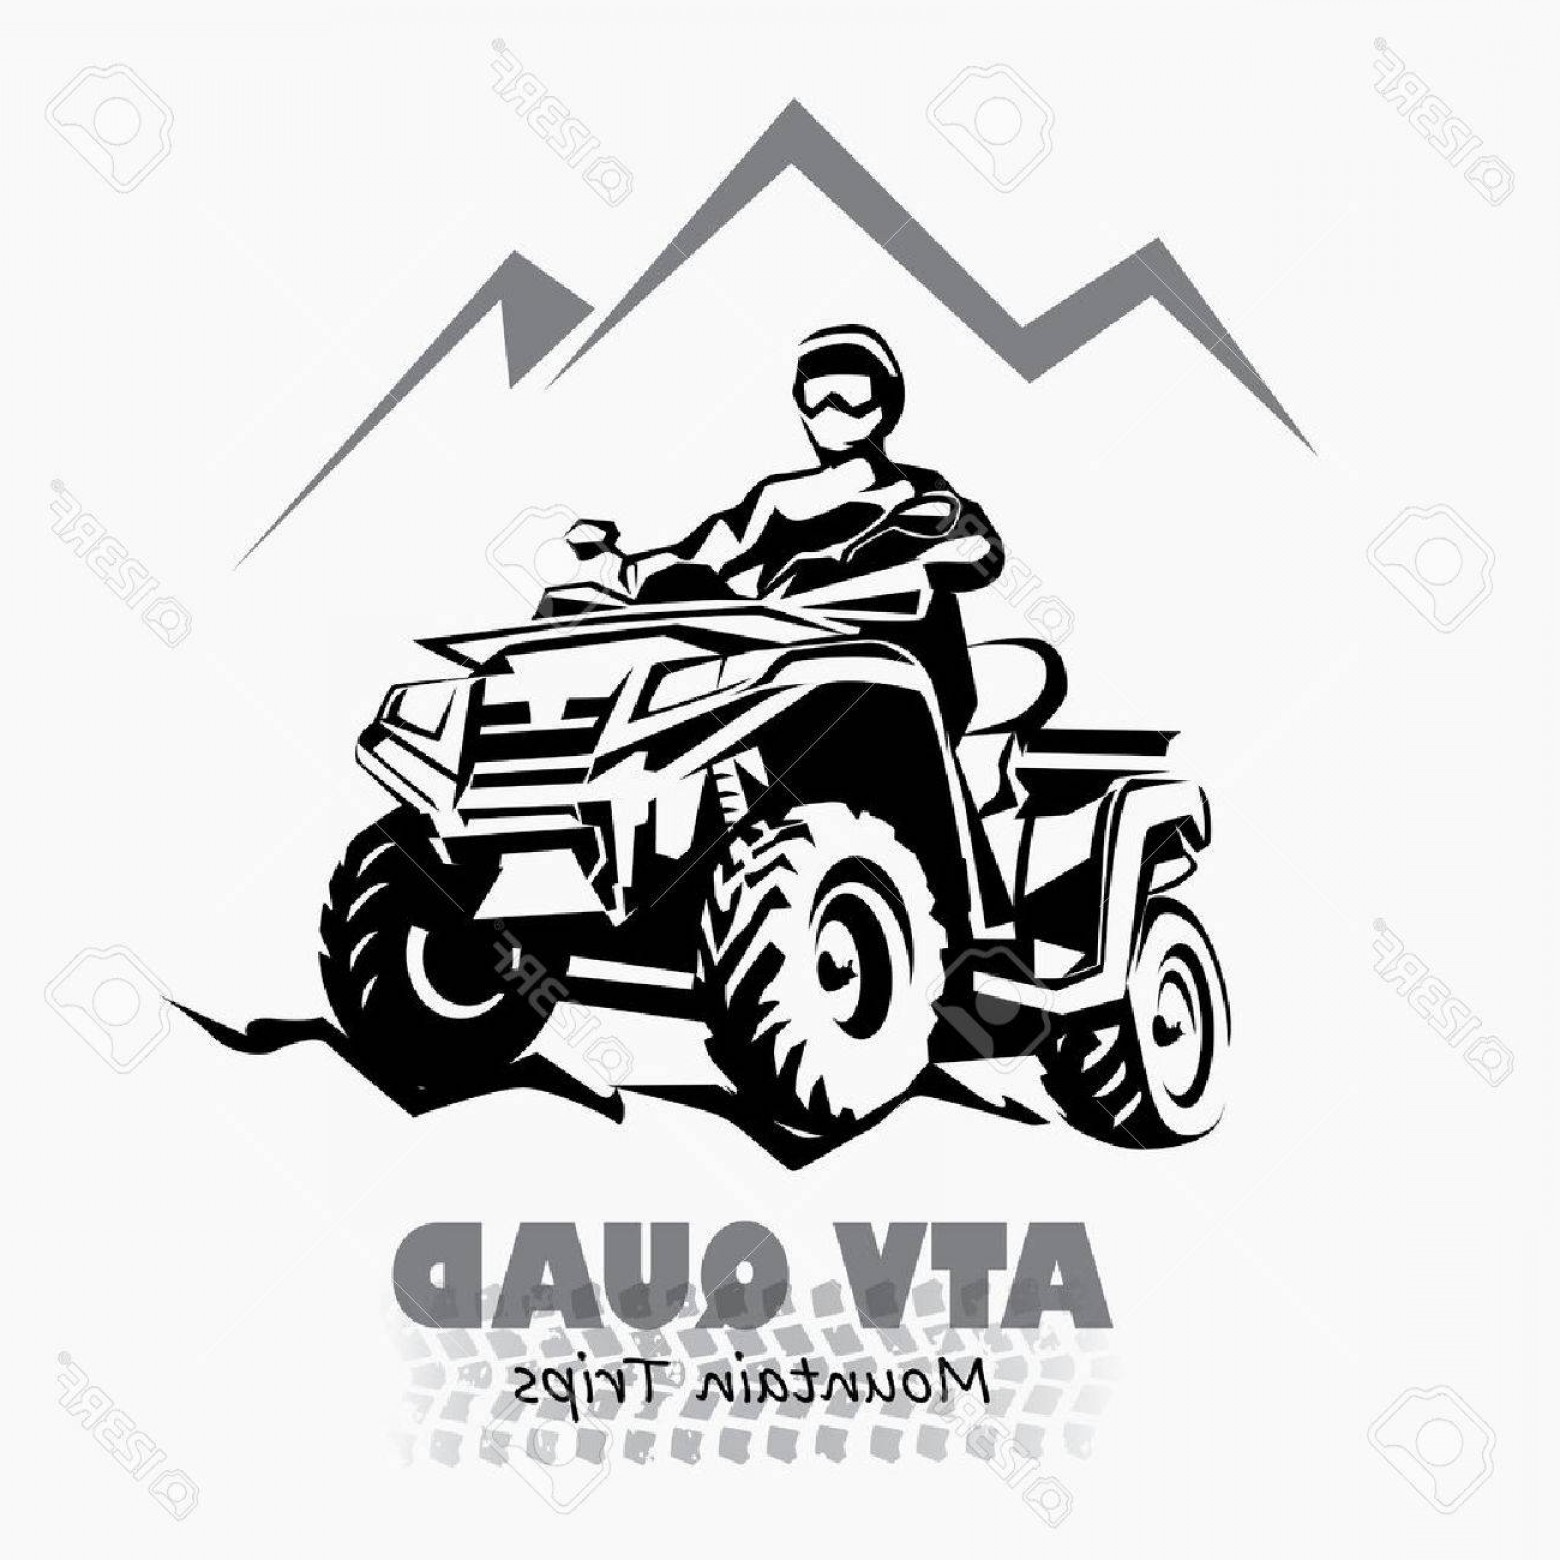 ATV Vector Clip Art: Photostock Vector Atv Quad Bike Stylized Silhouette Vector Symbol Design Element For Emblem